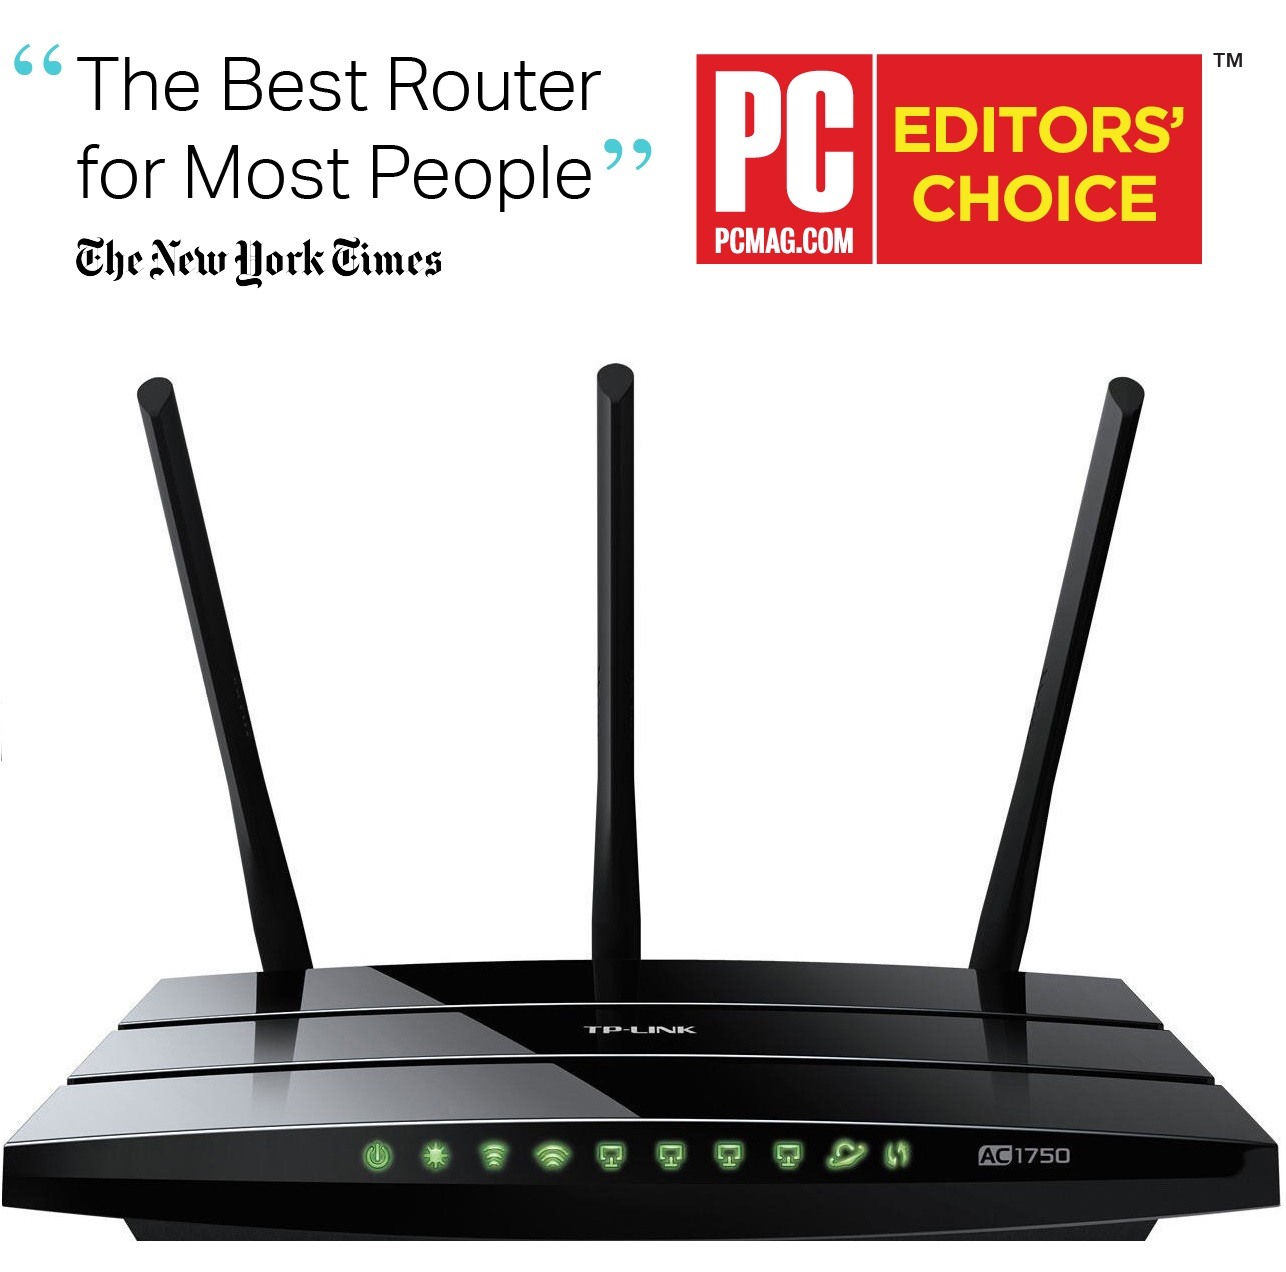 ac1750. tp-link archer c7 ac1750 wireless dual band gigabit router image 2 of 6 ac1750 7